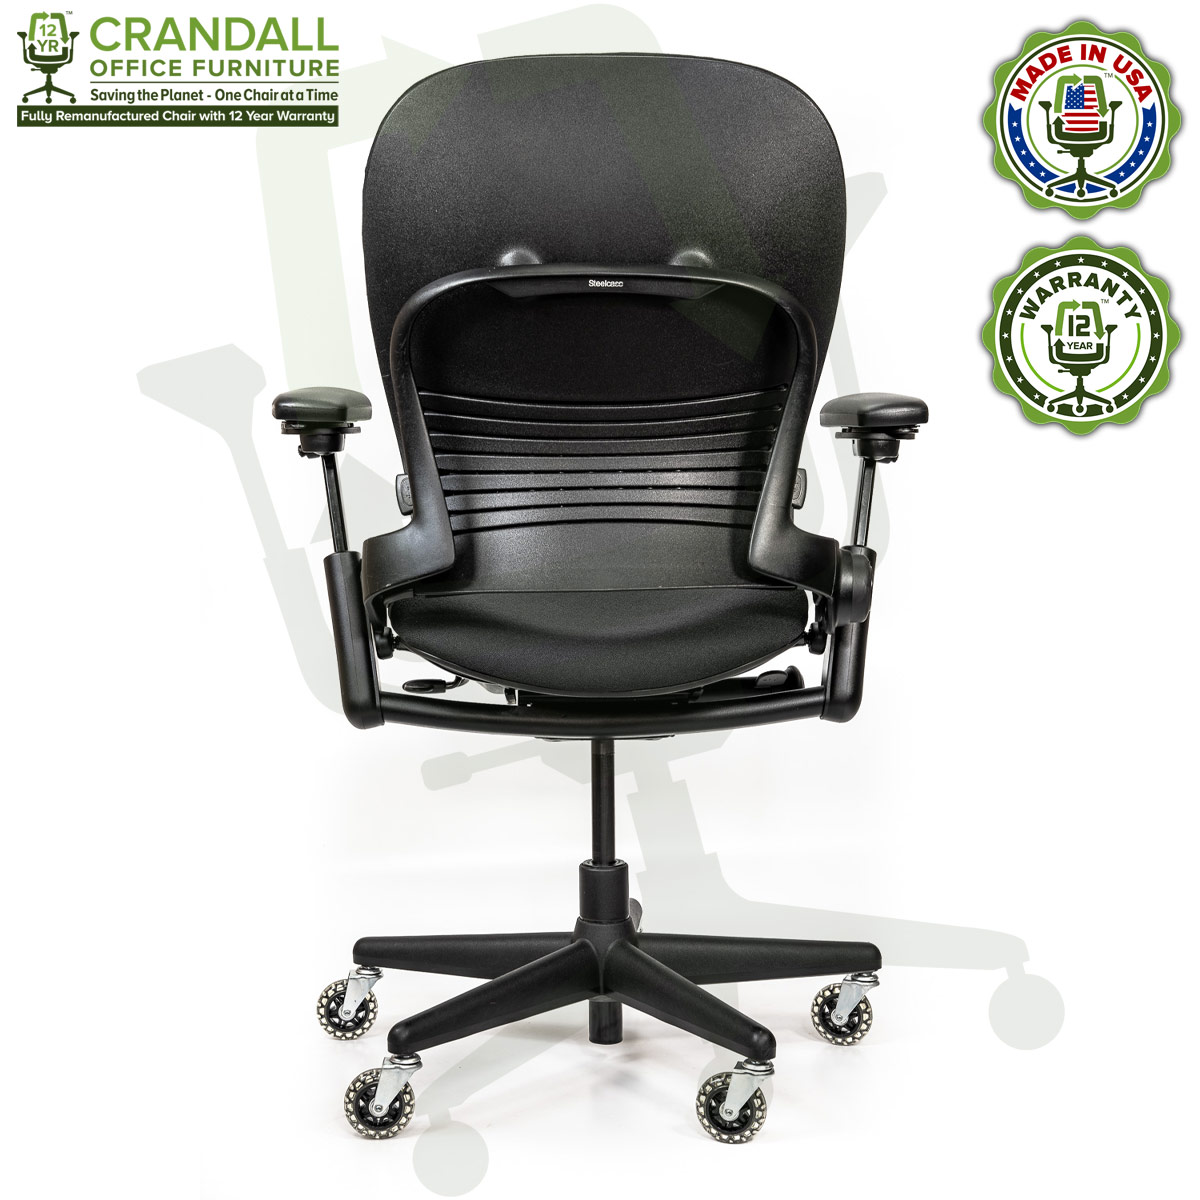 Crandall Office Furniture Remanufactured Steelcase V1 Leap Chair - Highback 005